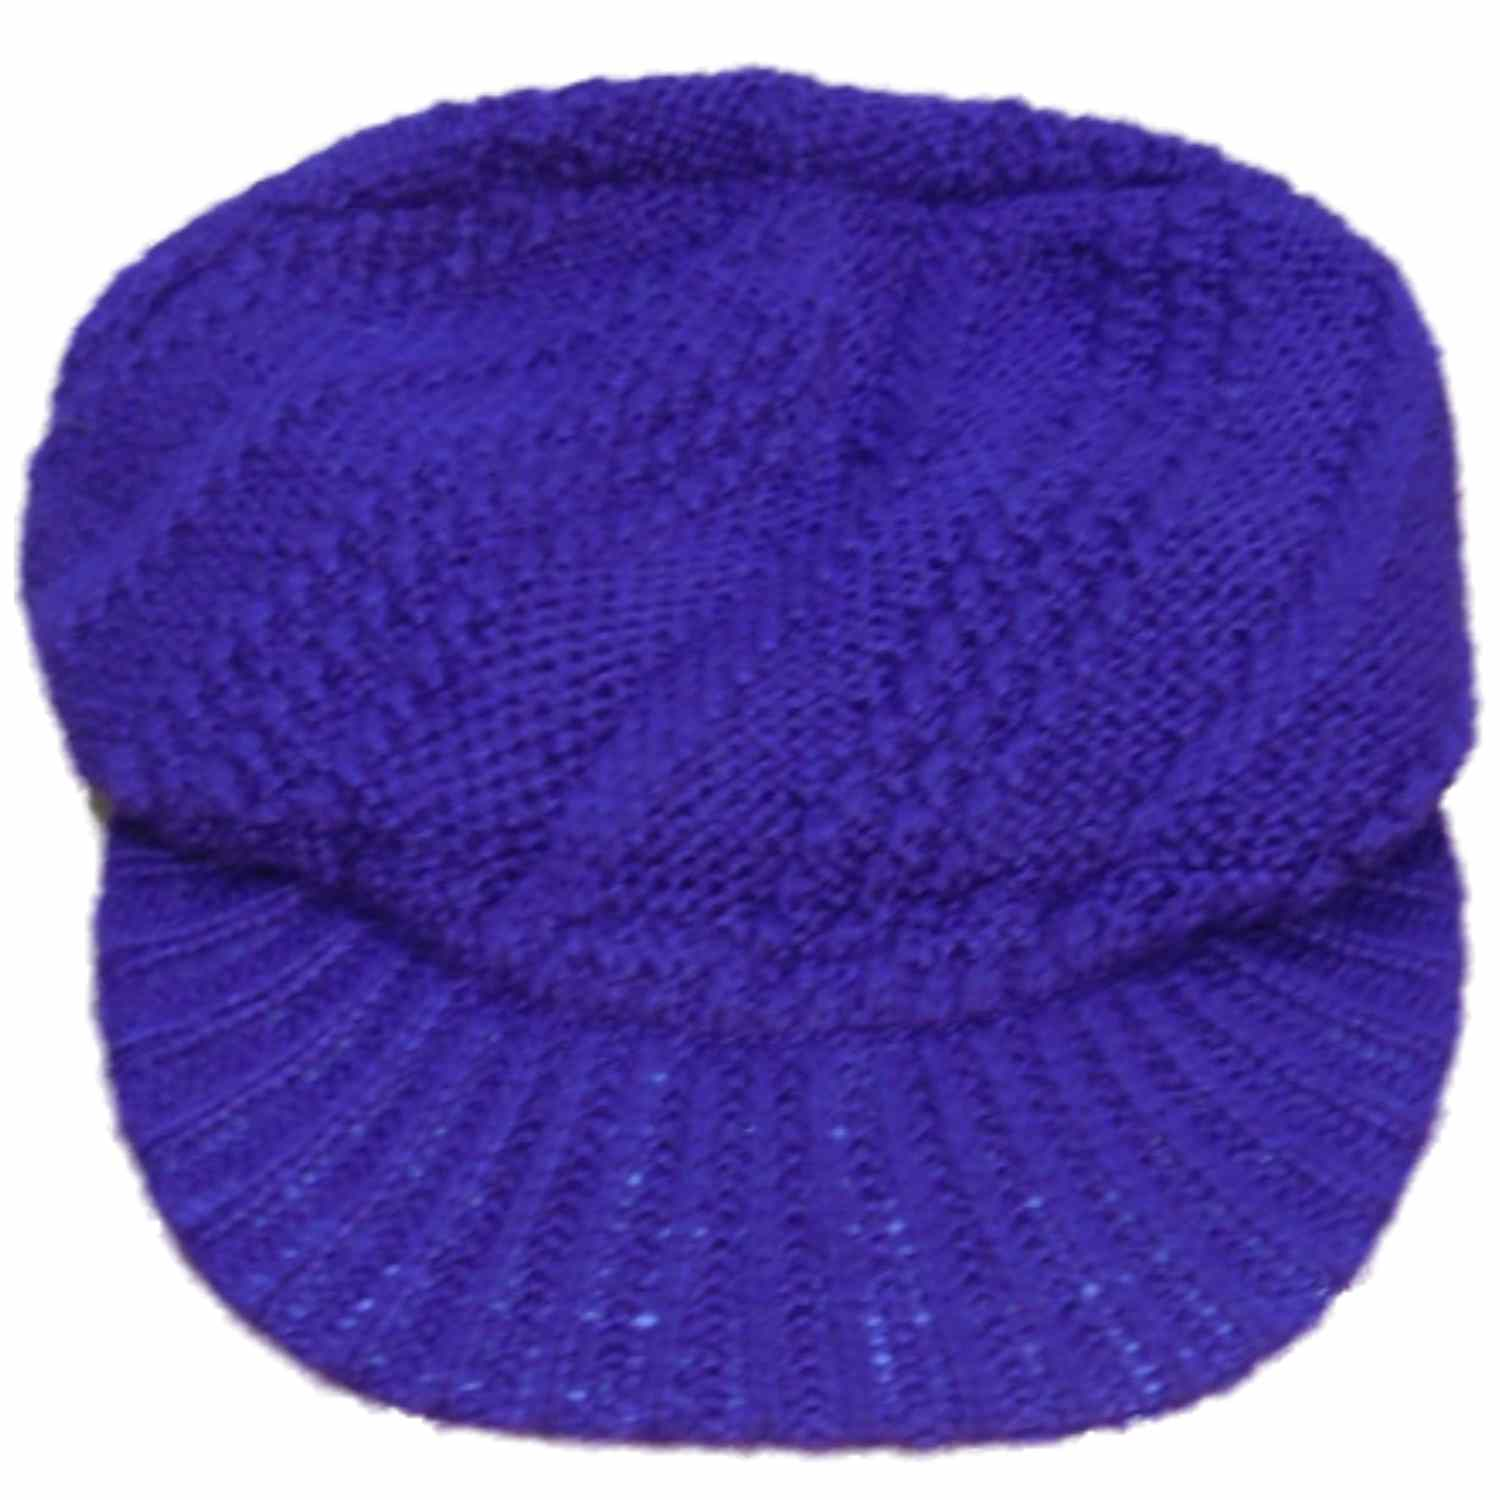 Fownes Womens Purple Knit Newboy Style Beanie Stocking Cap